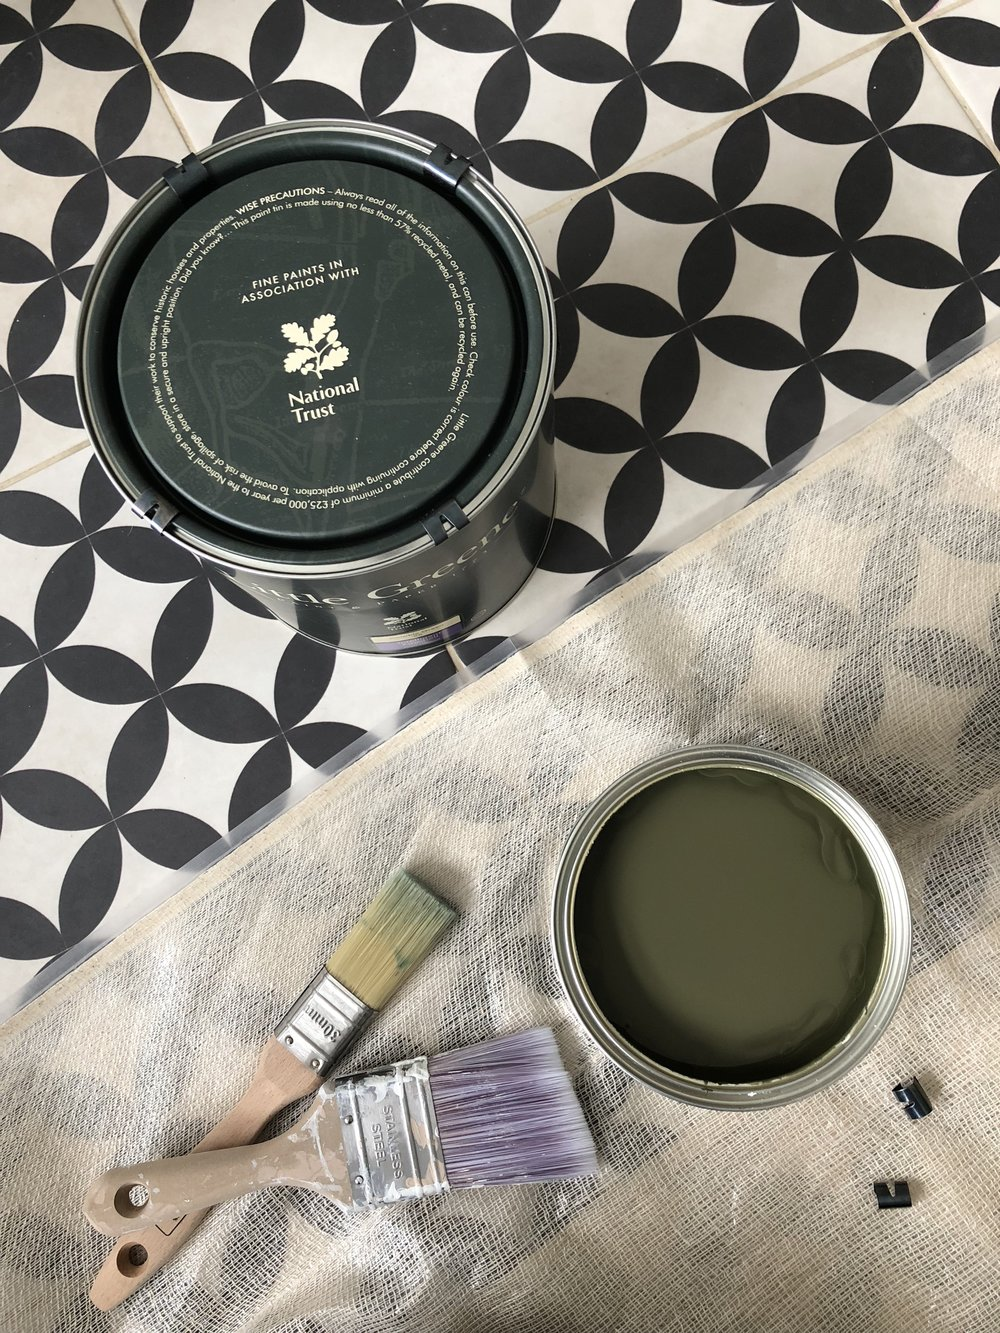 I've not used  Little Greene  before but I was really impressed - its so thick and easy to work with. Only needed two coats and the finish is remarkable, especially on the woodwork